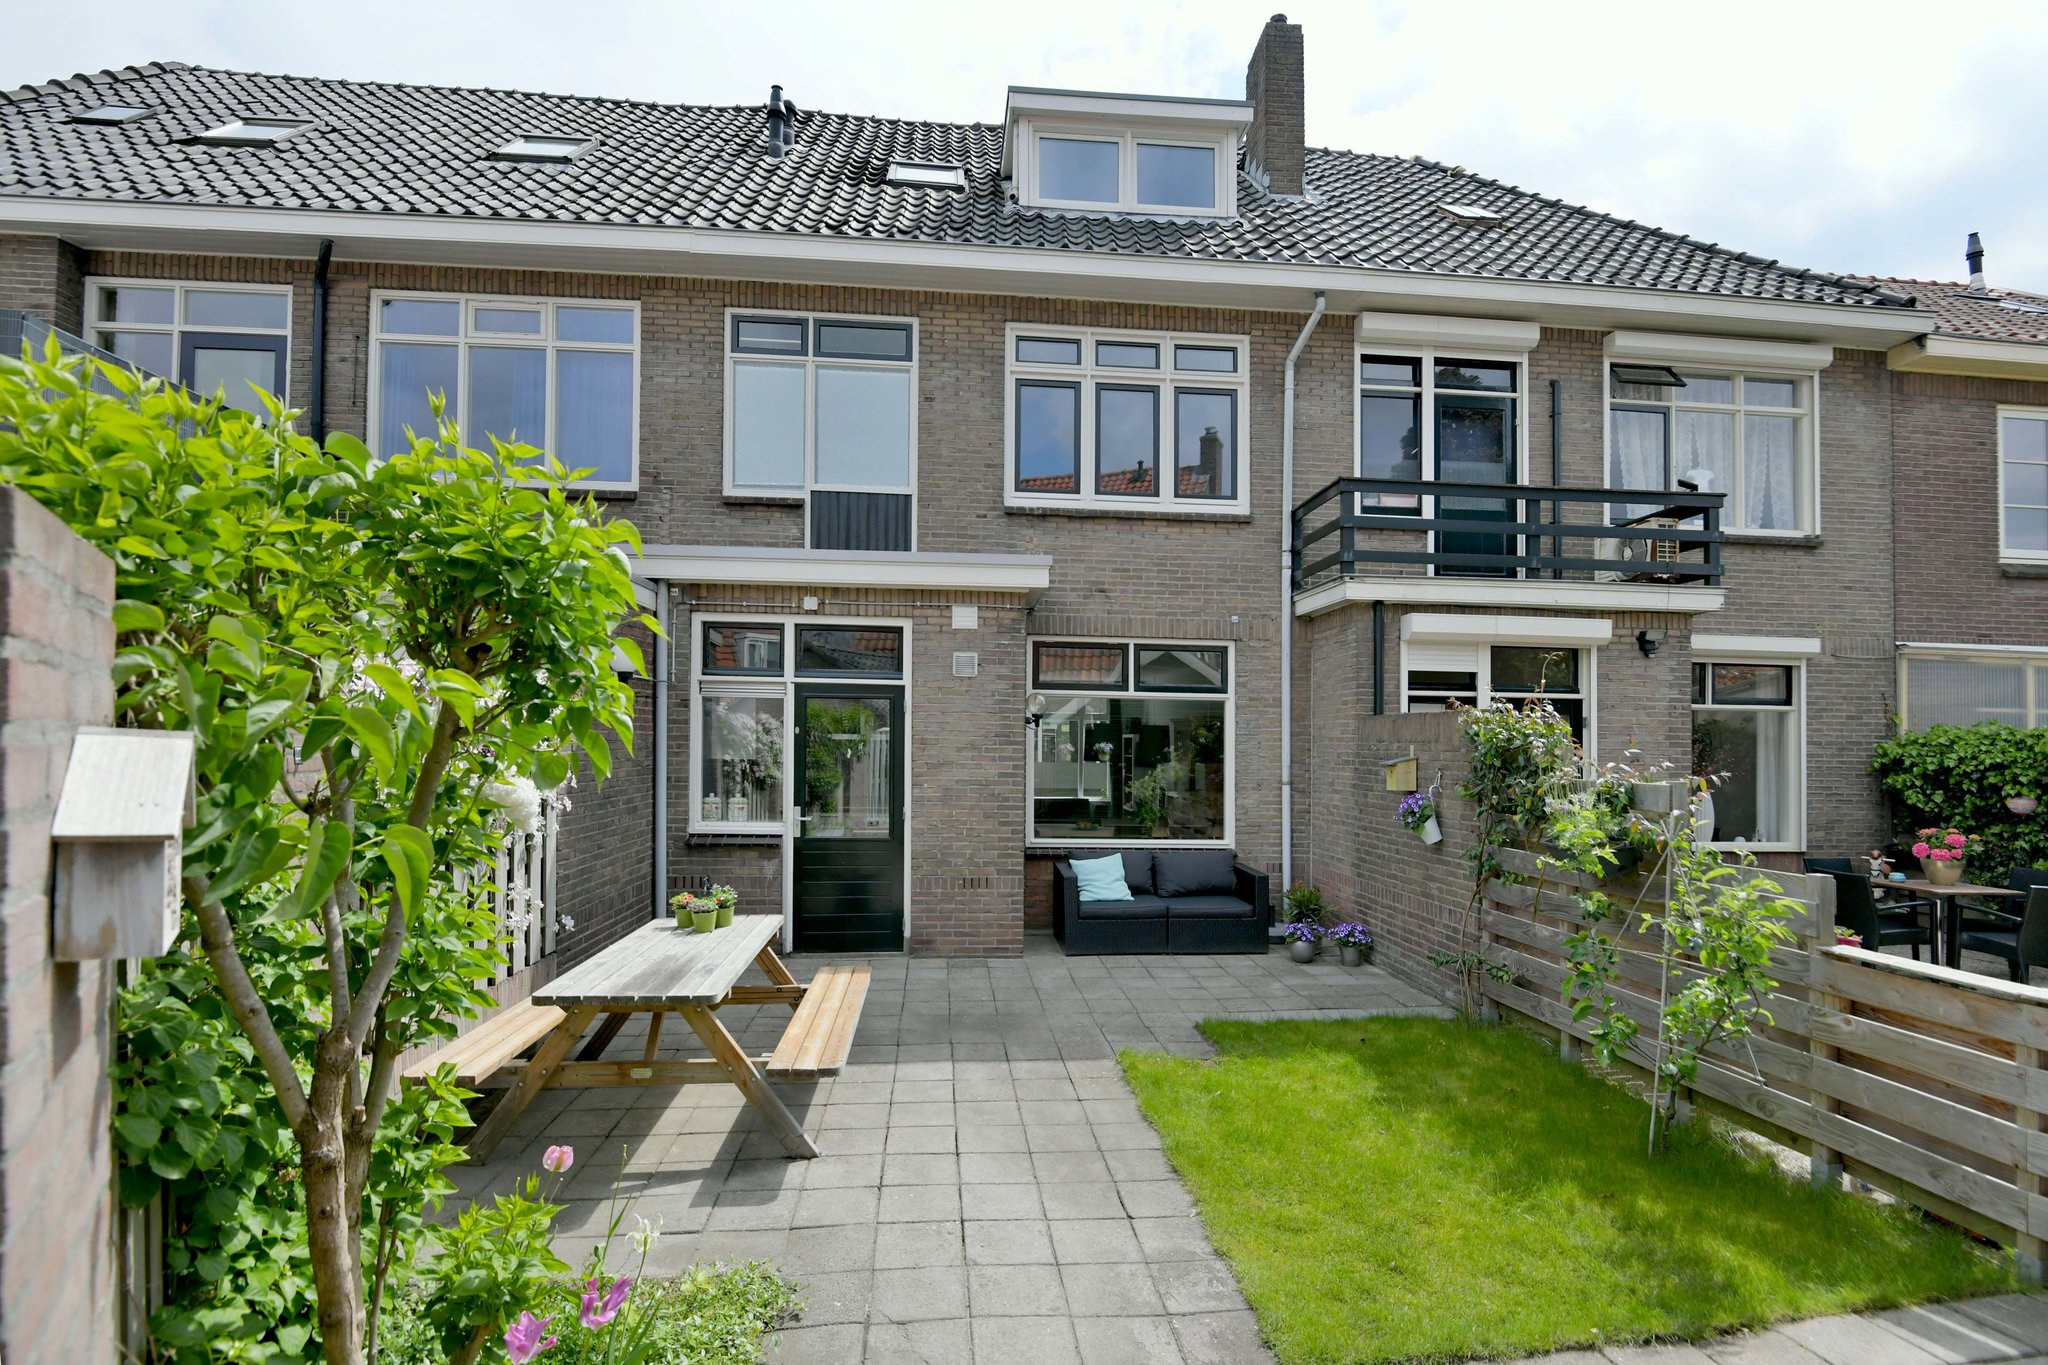 deventer-oudegoedstraat-3922878-foto-37.jpg